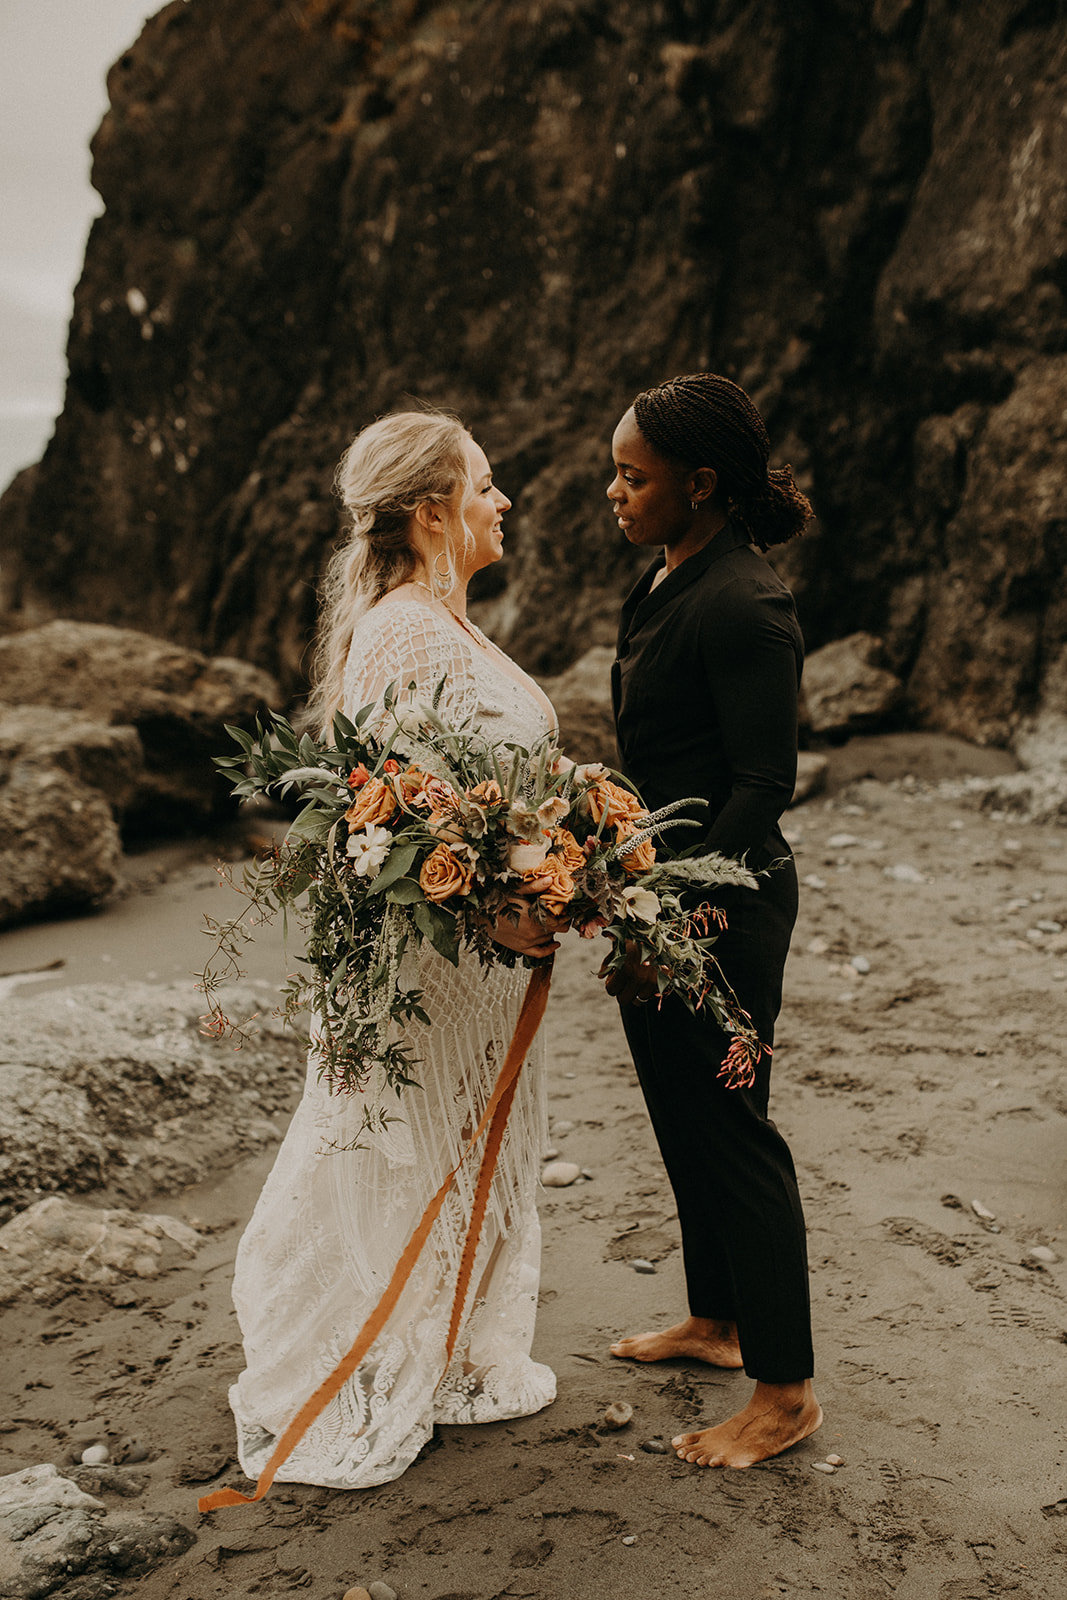 Ruby_Beach_Styled_Elopement_-_Run_Away_with_Me_Elopement_Collective_-_Kamra_Fuller_Photography_-_First_Look-40